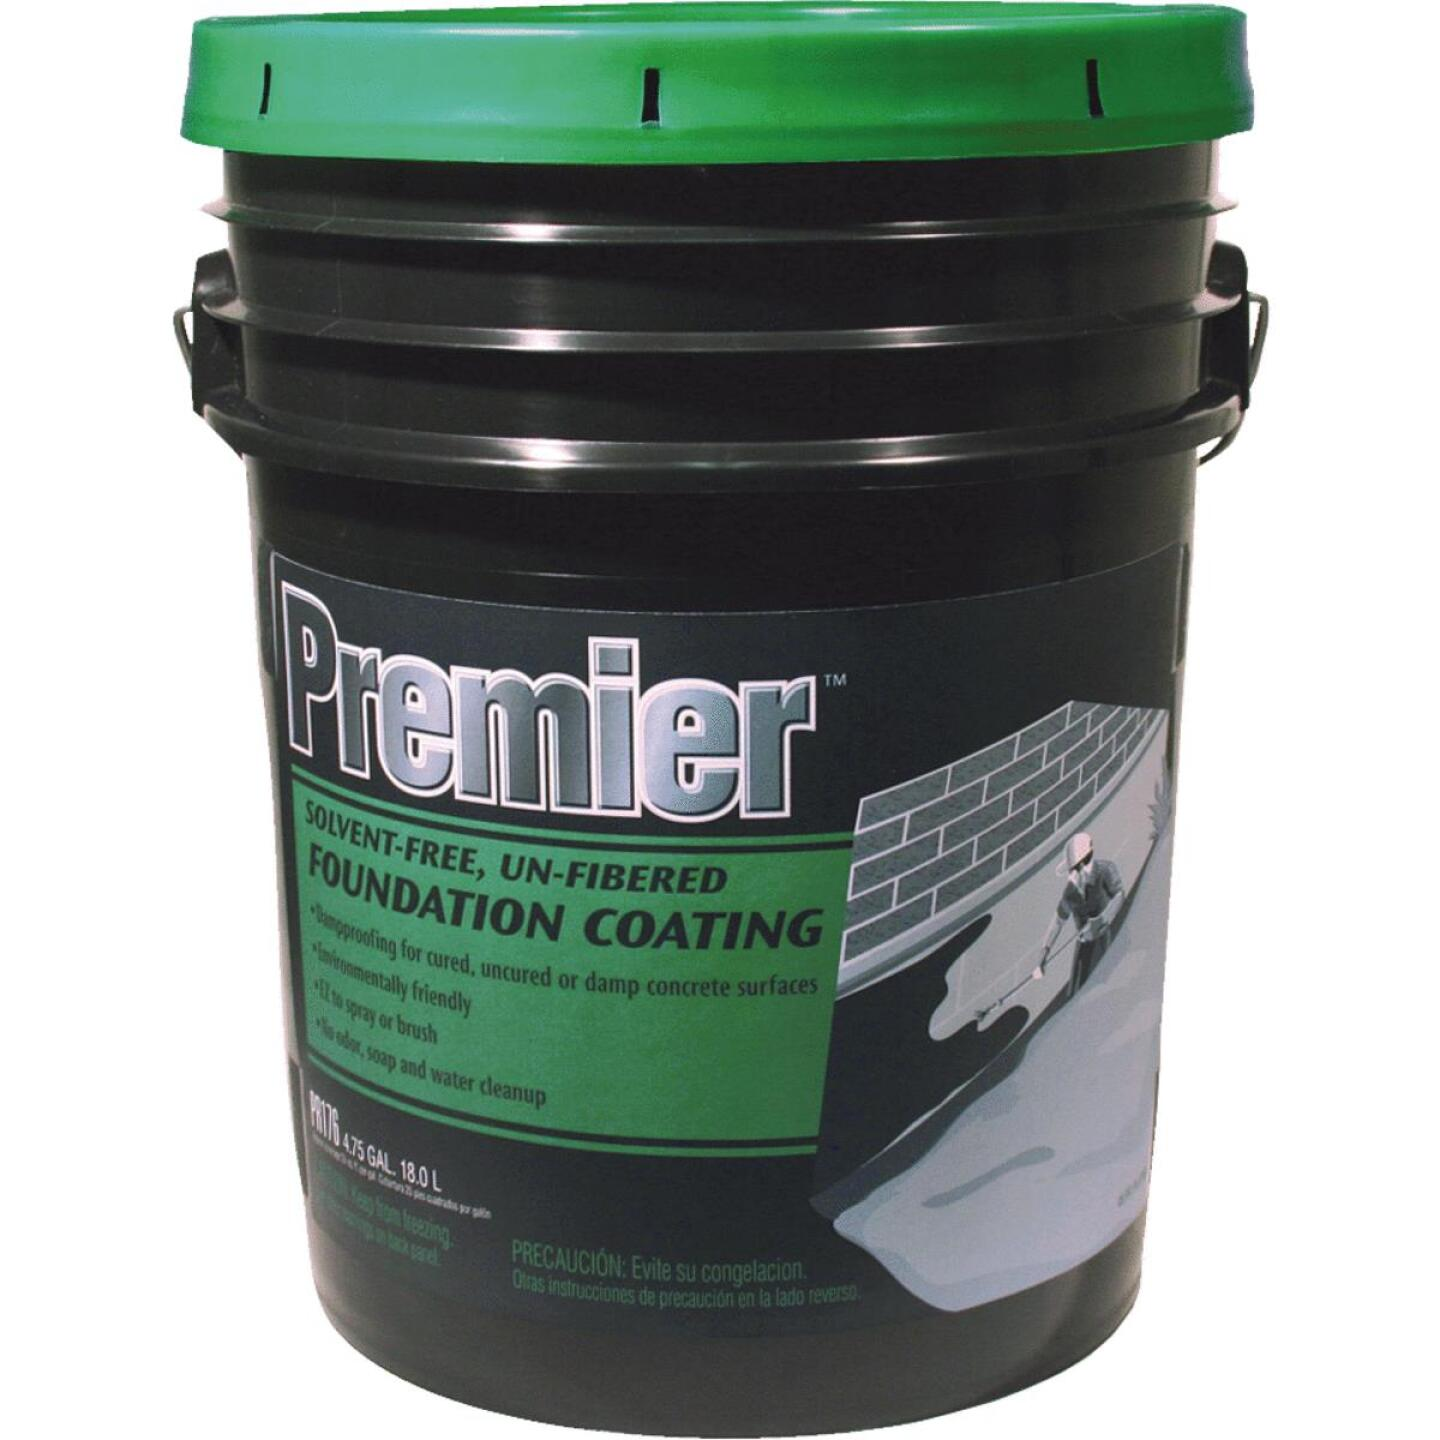 Premier 5 Gal. Solvent-Free Non-Fibered Foundation Coating Image 1